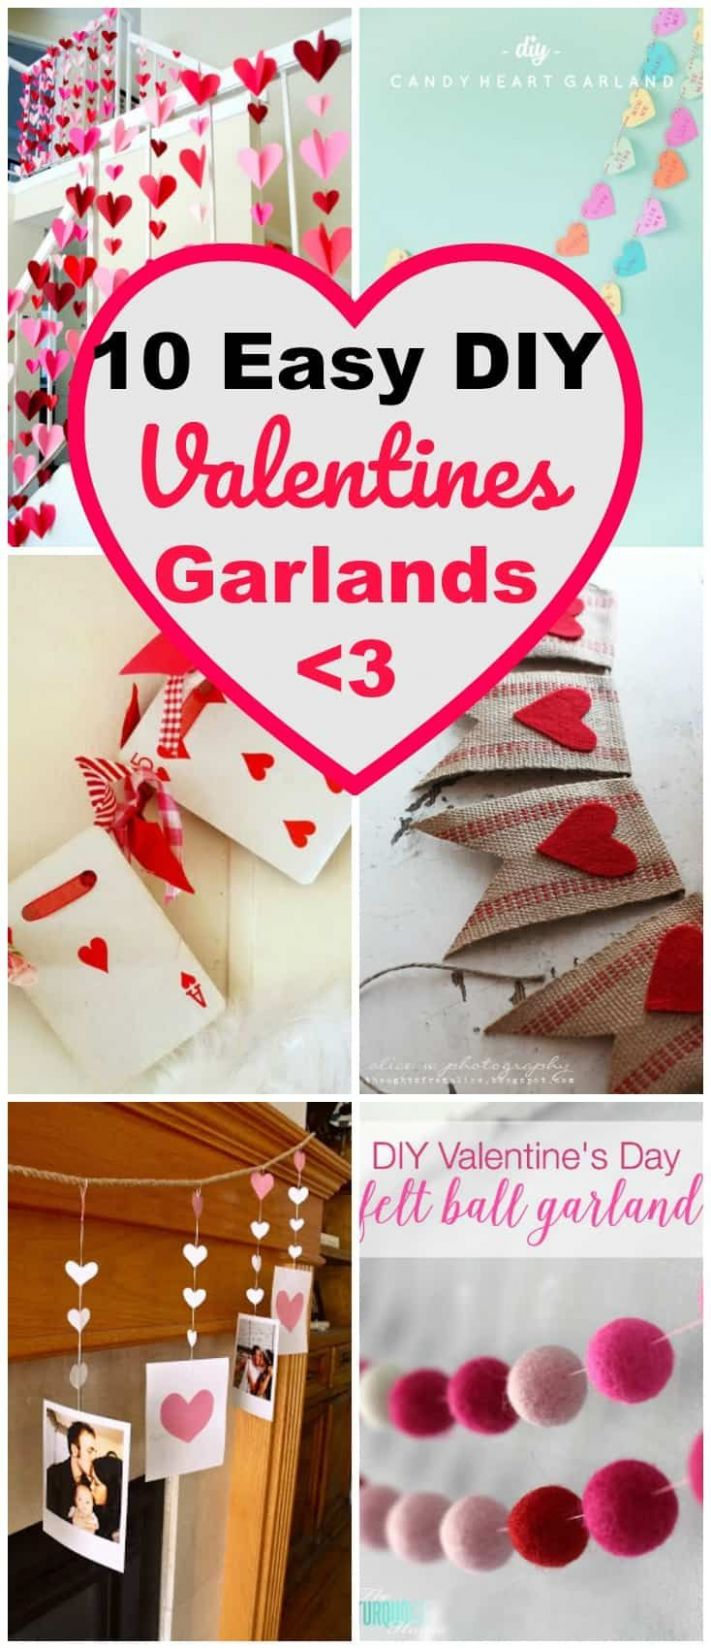 Valentines Day DIY Garlands ~ 11 Easy Garland Wall Art Ideas for ...